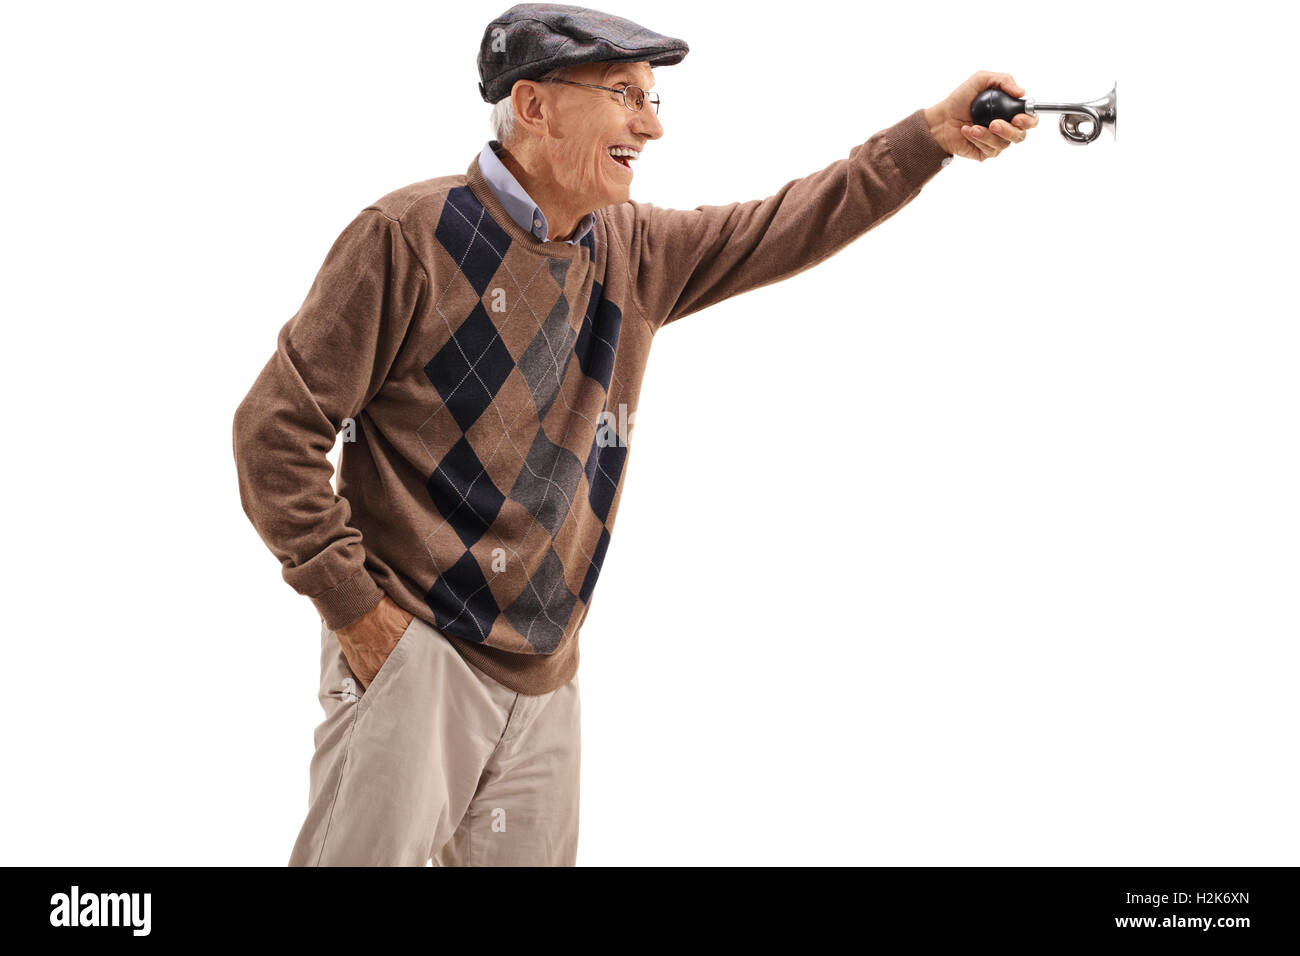 Excited elderly man honking a horn isolated on white background - Stock Image